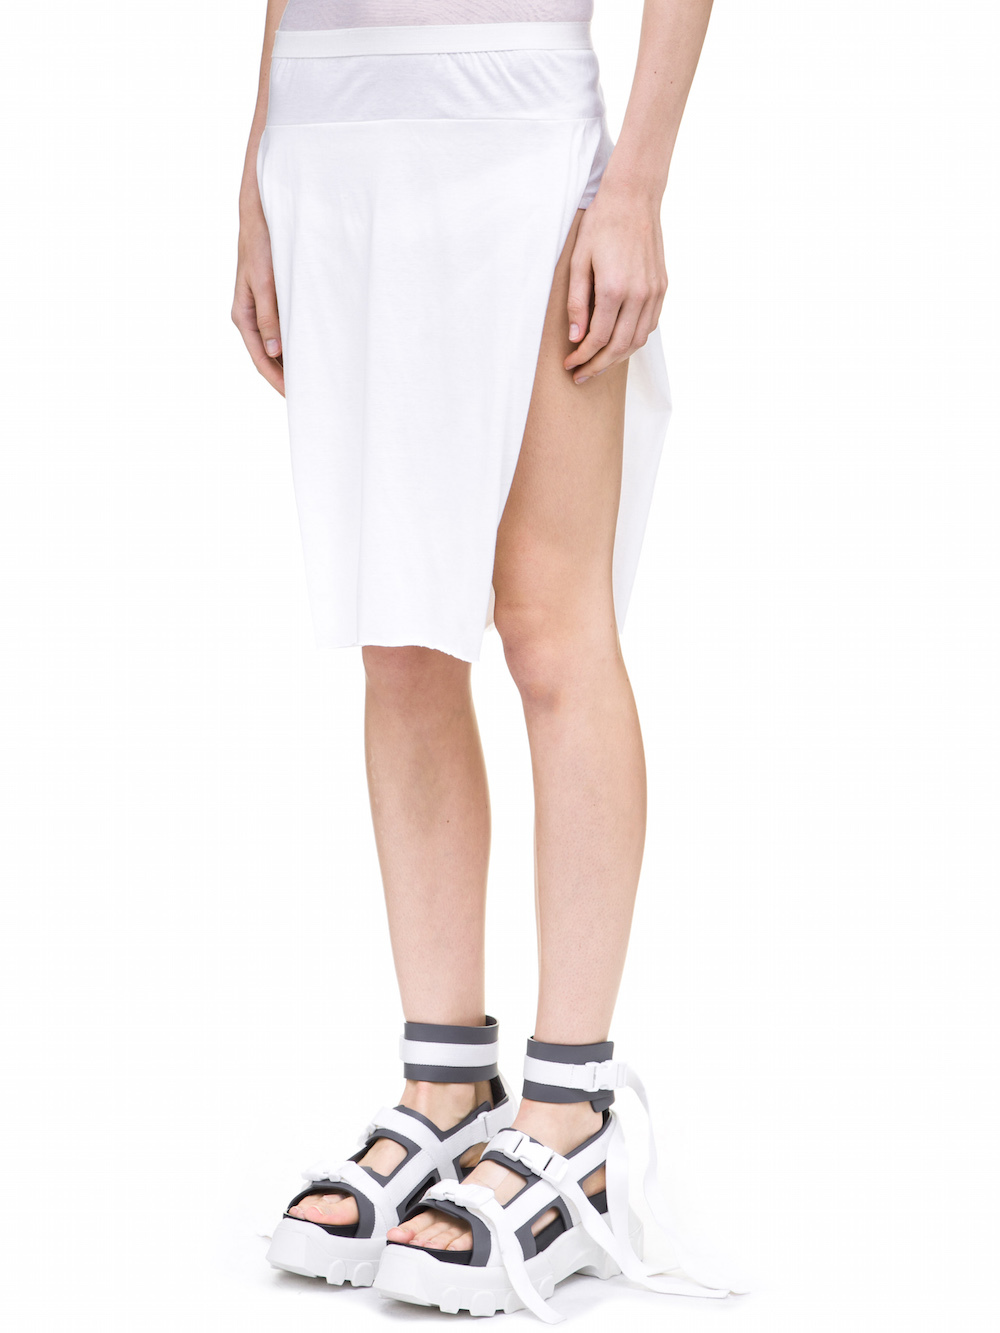 RICK OWENS LOIN SKIRT IN WHITE